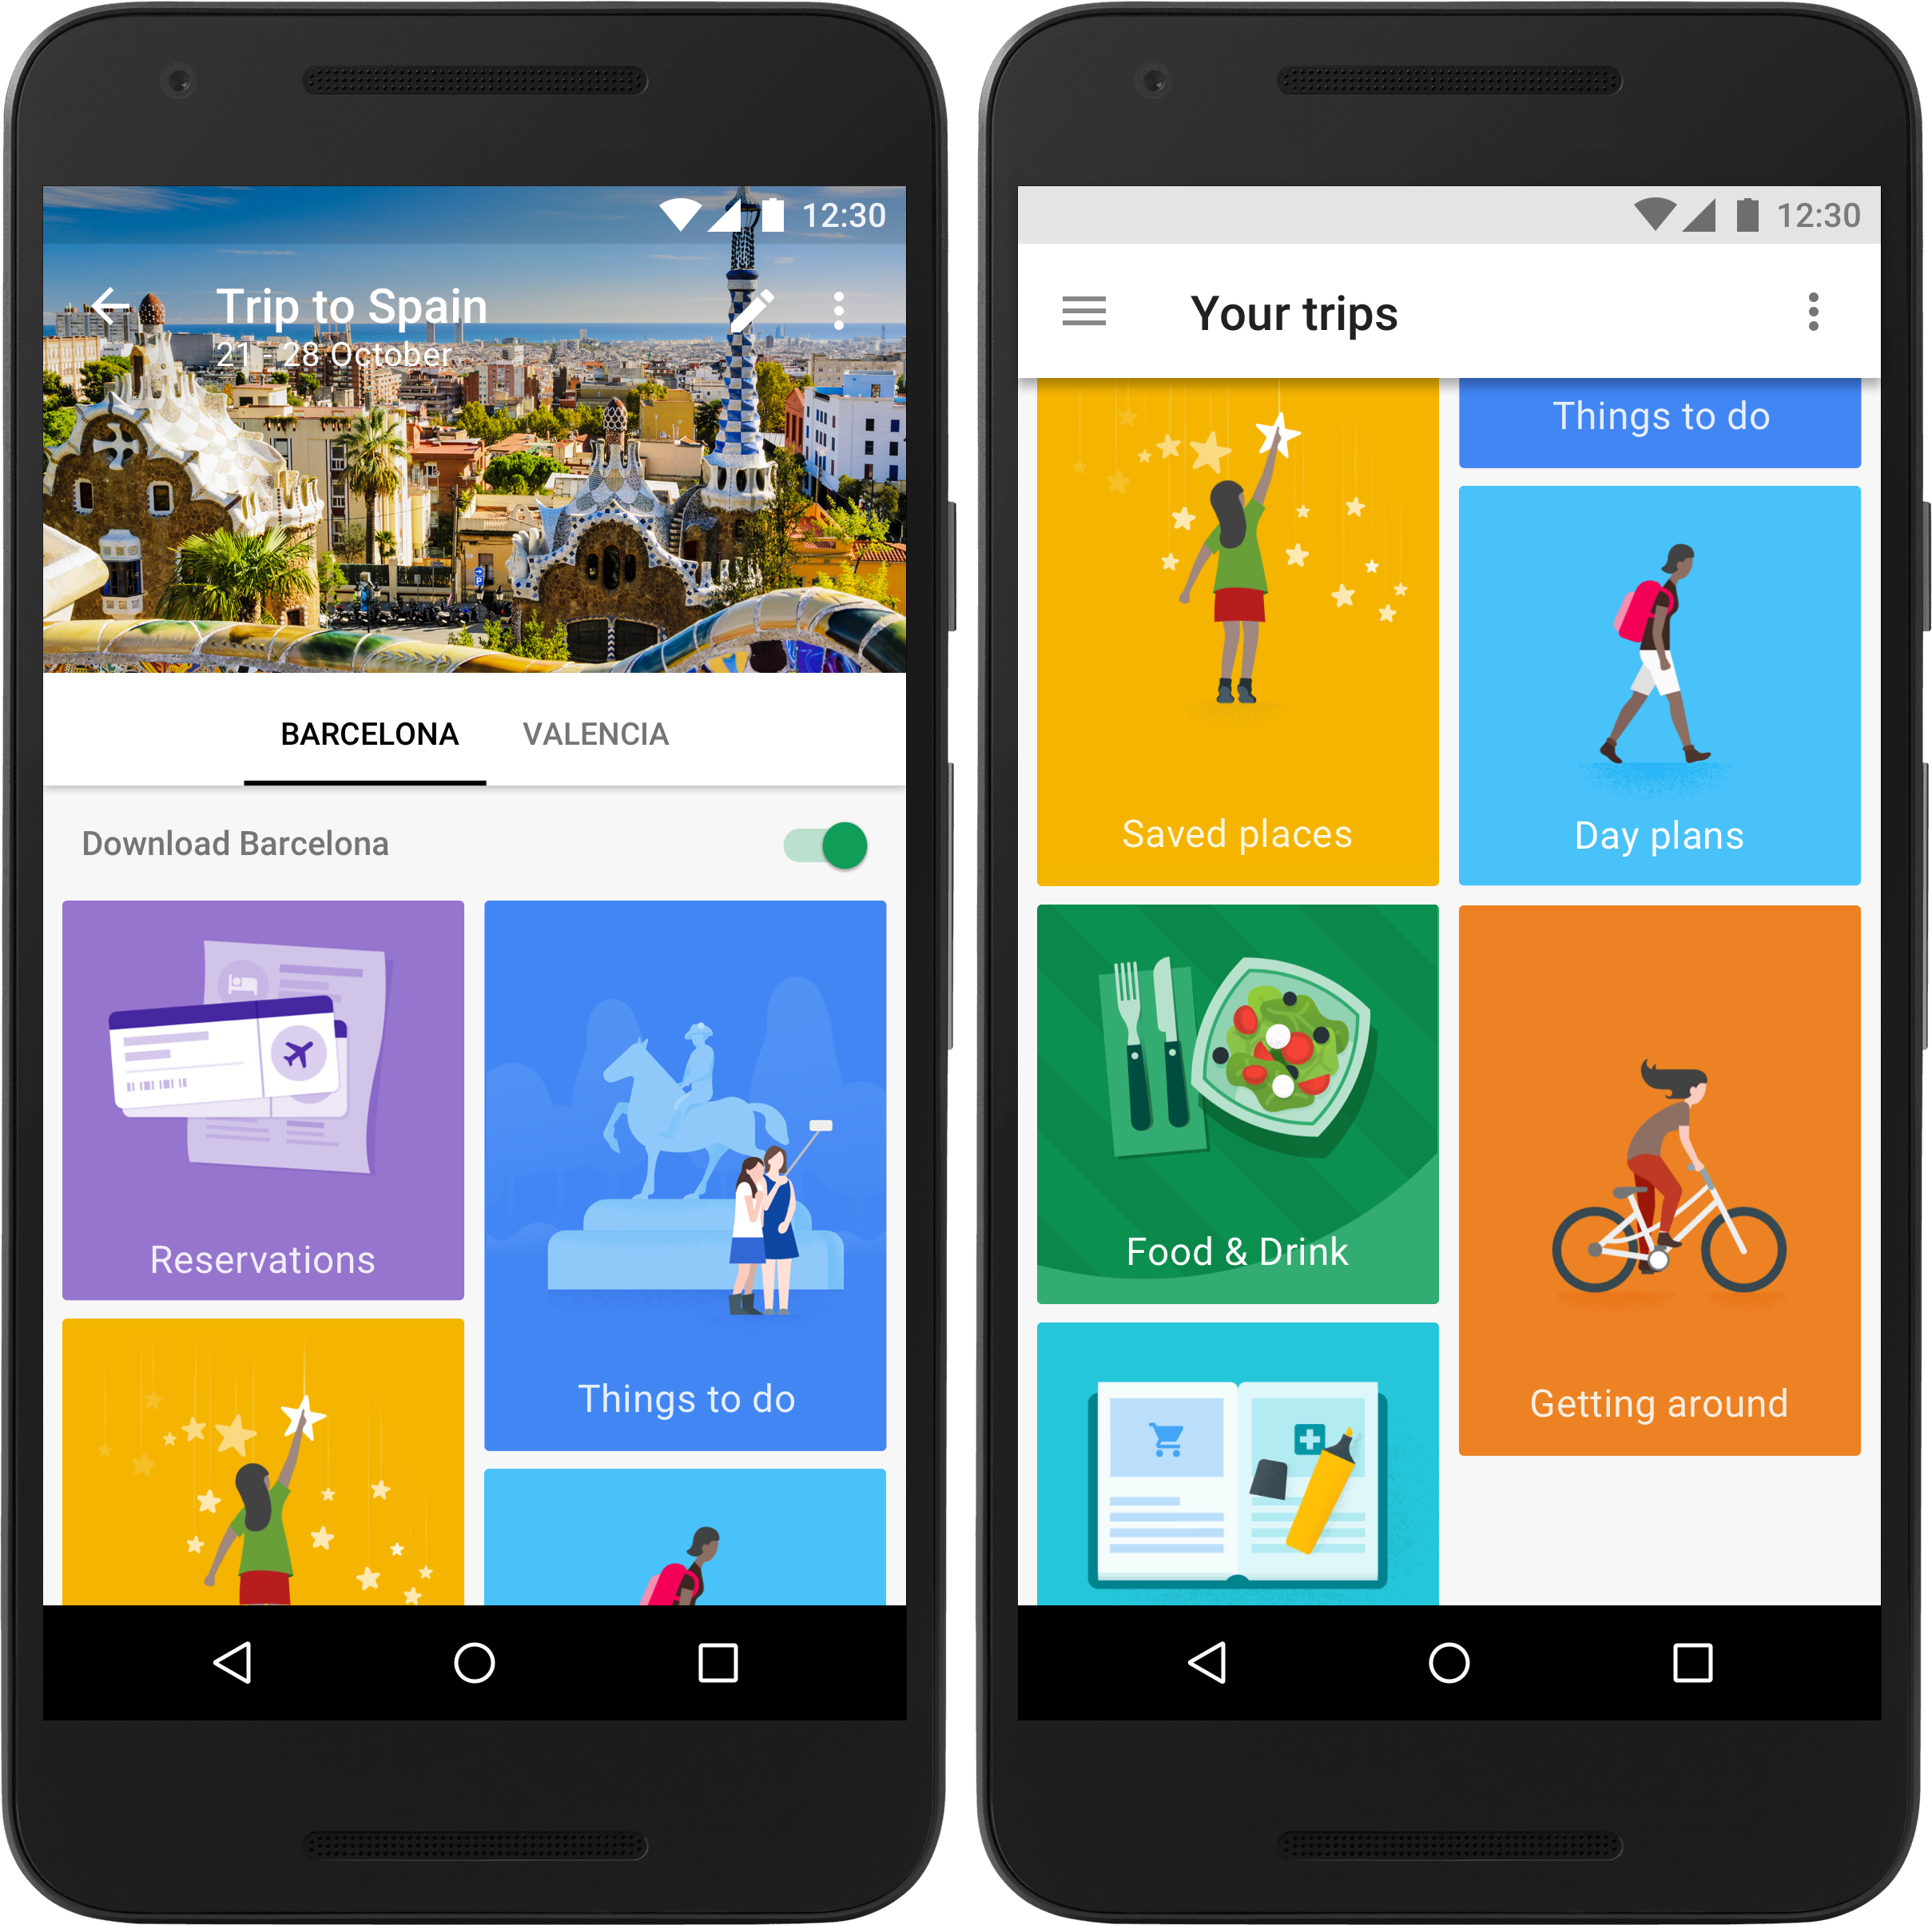 Google Launched New Tour Guide App GOOGLE TRIPS Help you Plan Vacations